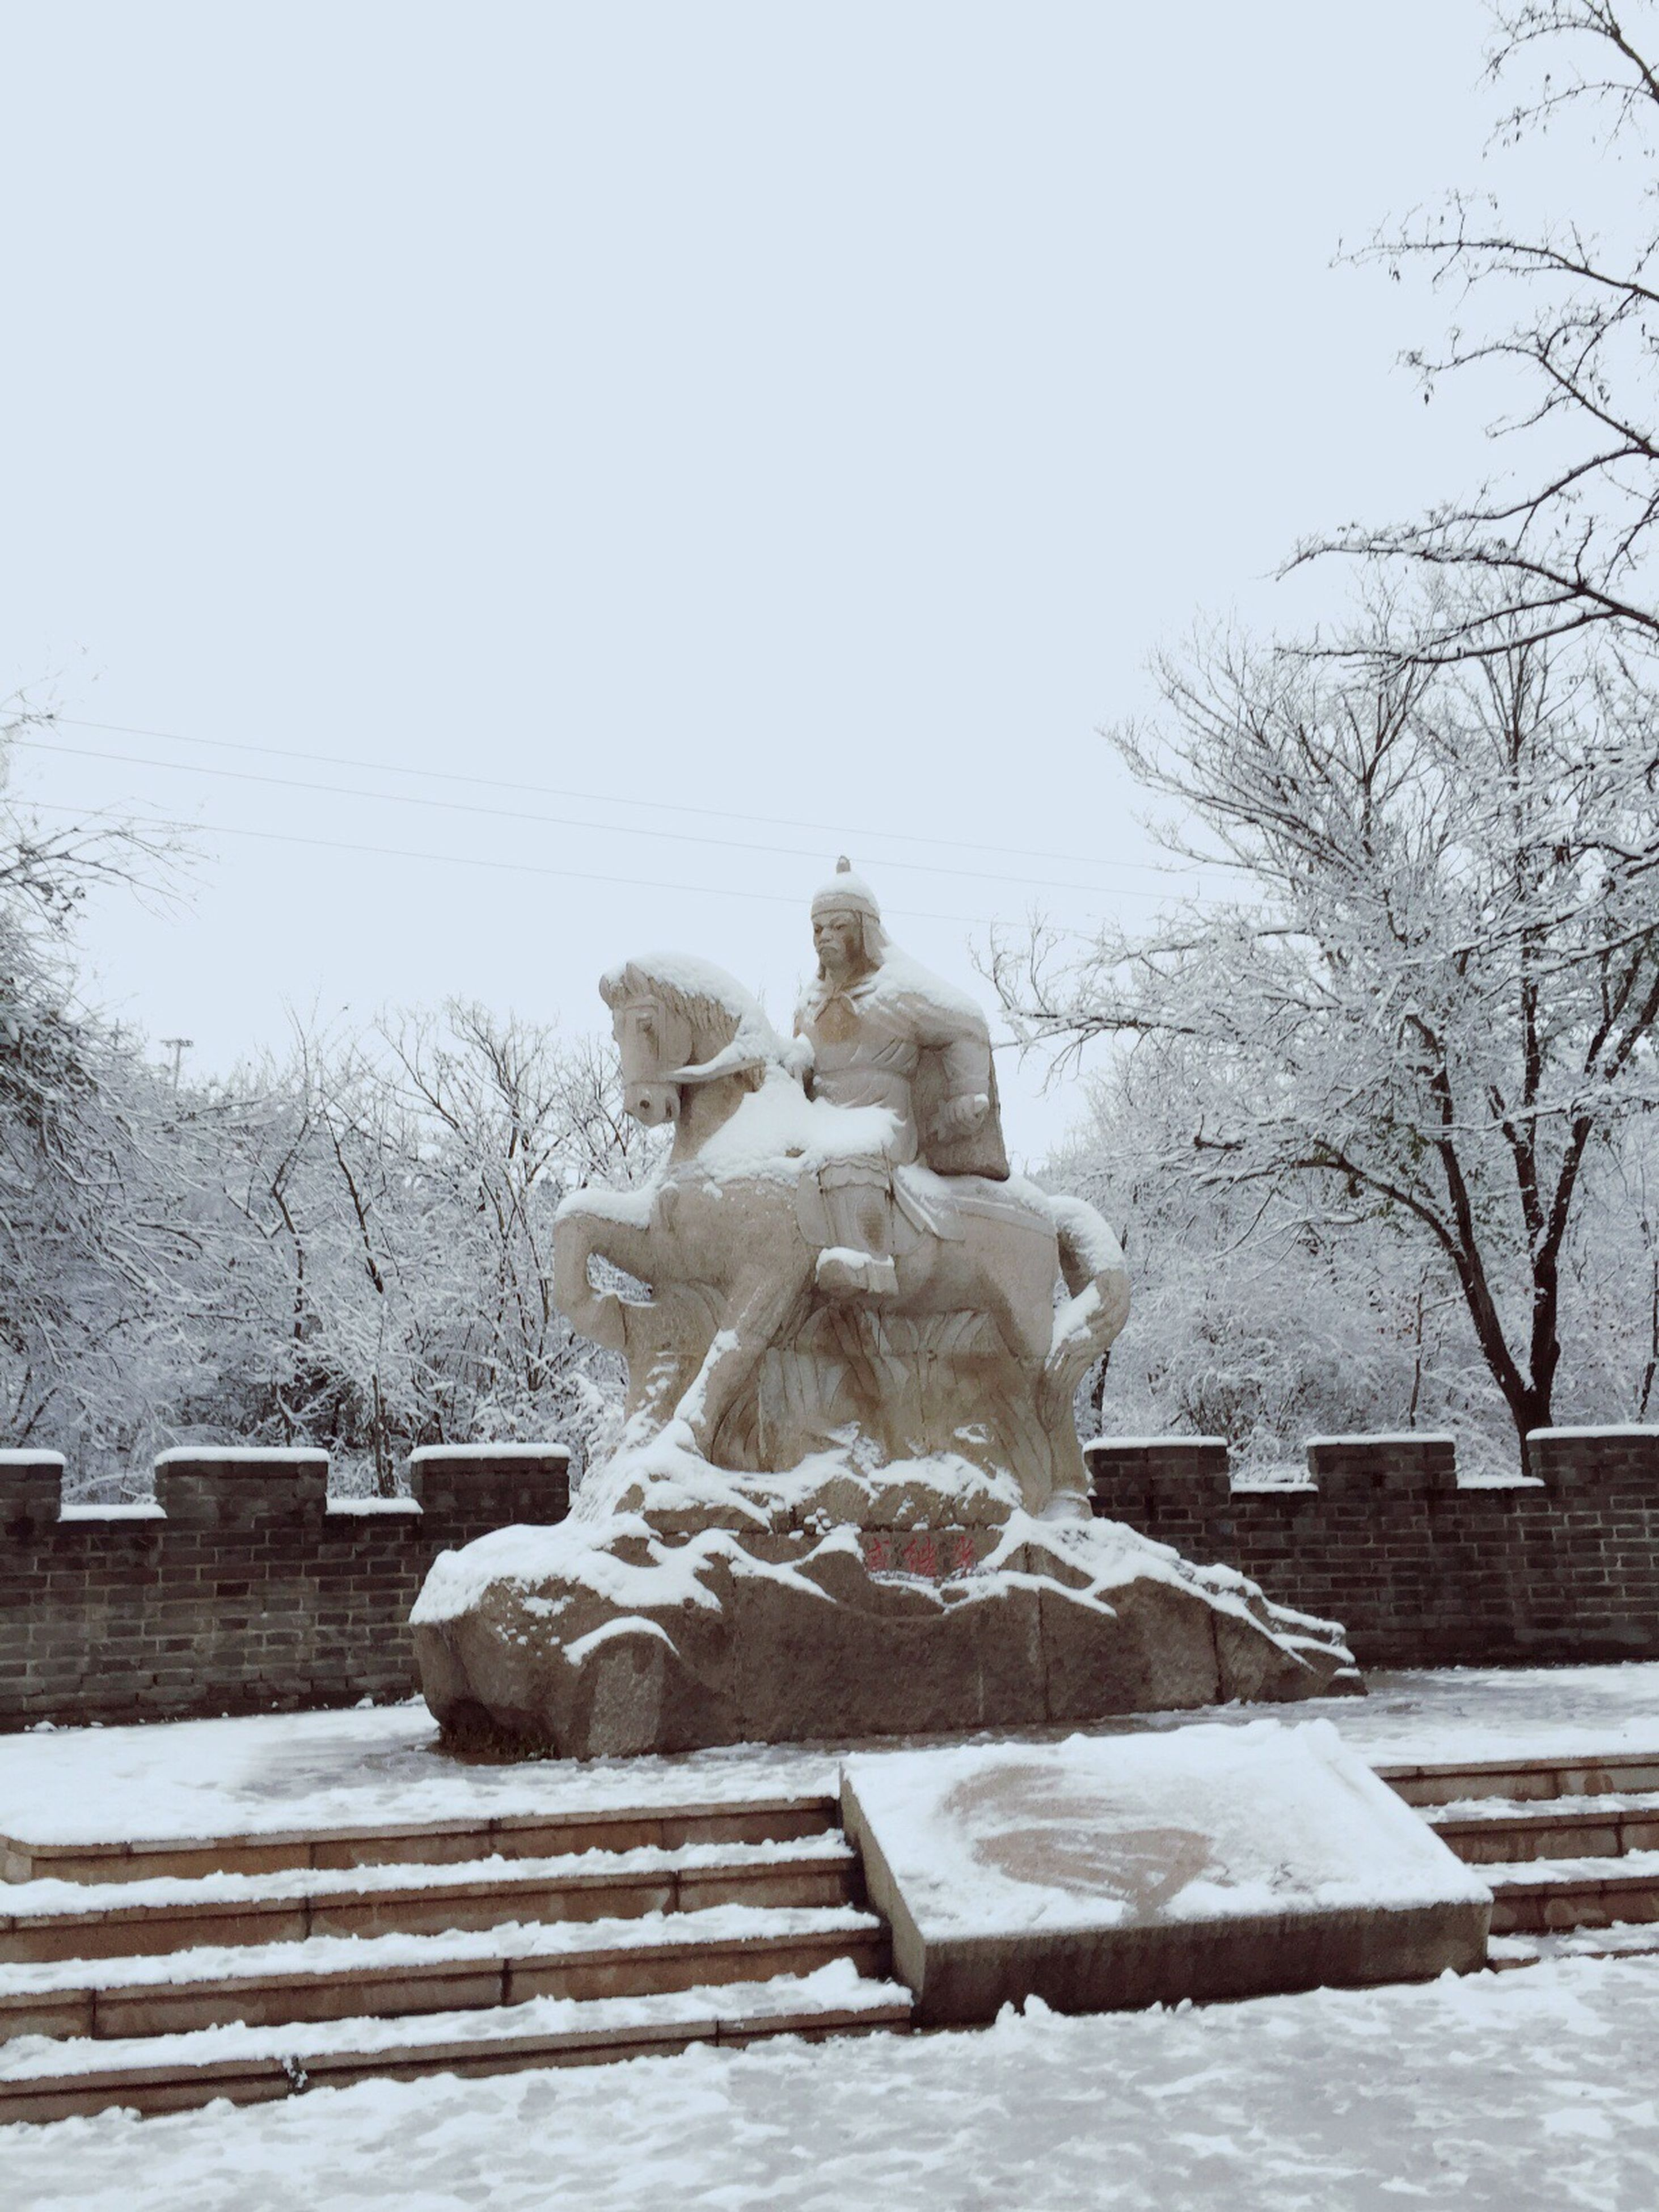 statue, human representation, sculpture, art and craft, art, creativity, tree, clear sky, winter, snow, animal representation, cold temperature, religion, stone material, cemetery, day, built structure, bare tree